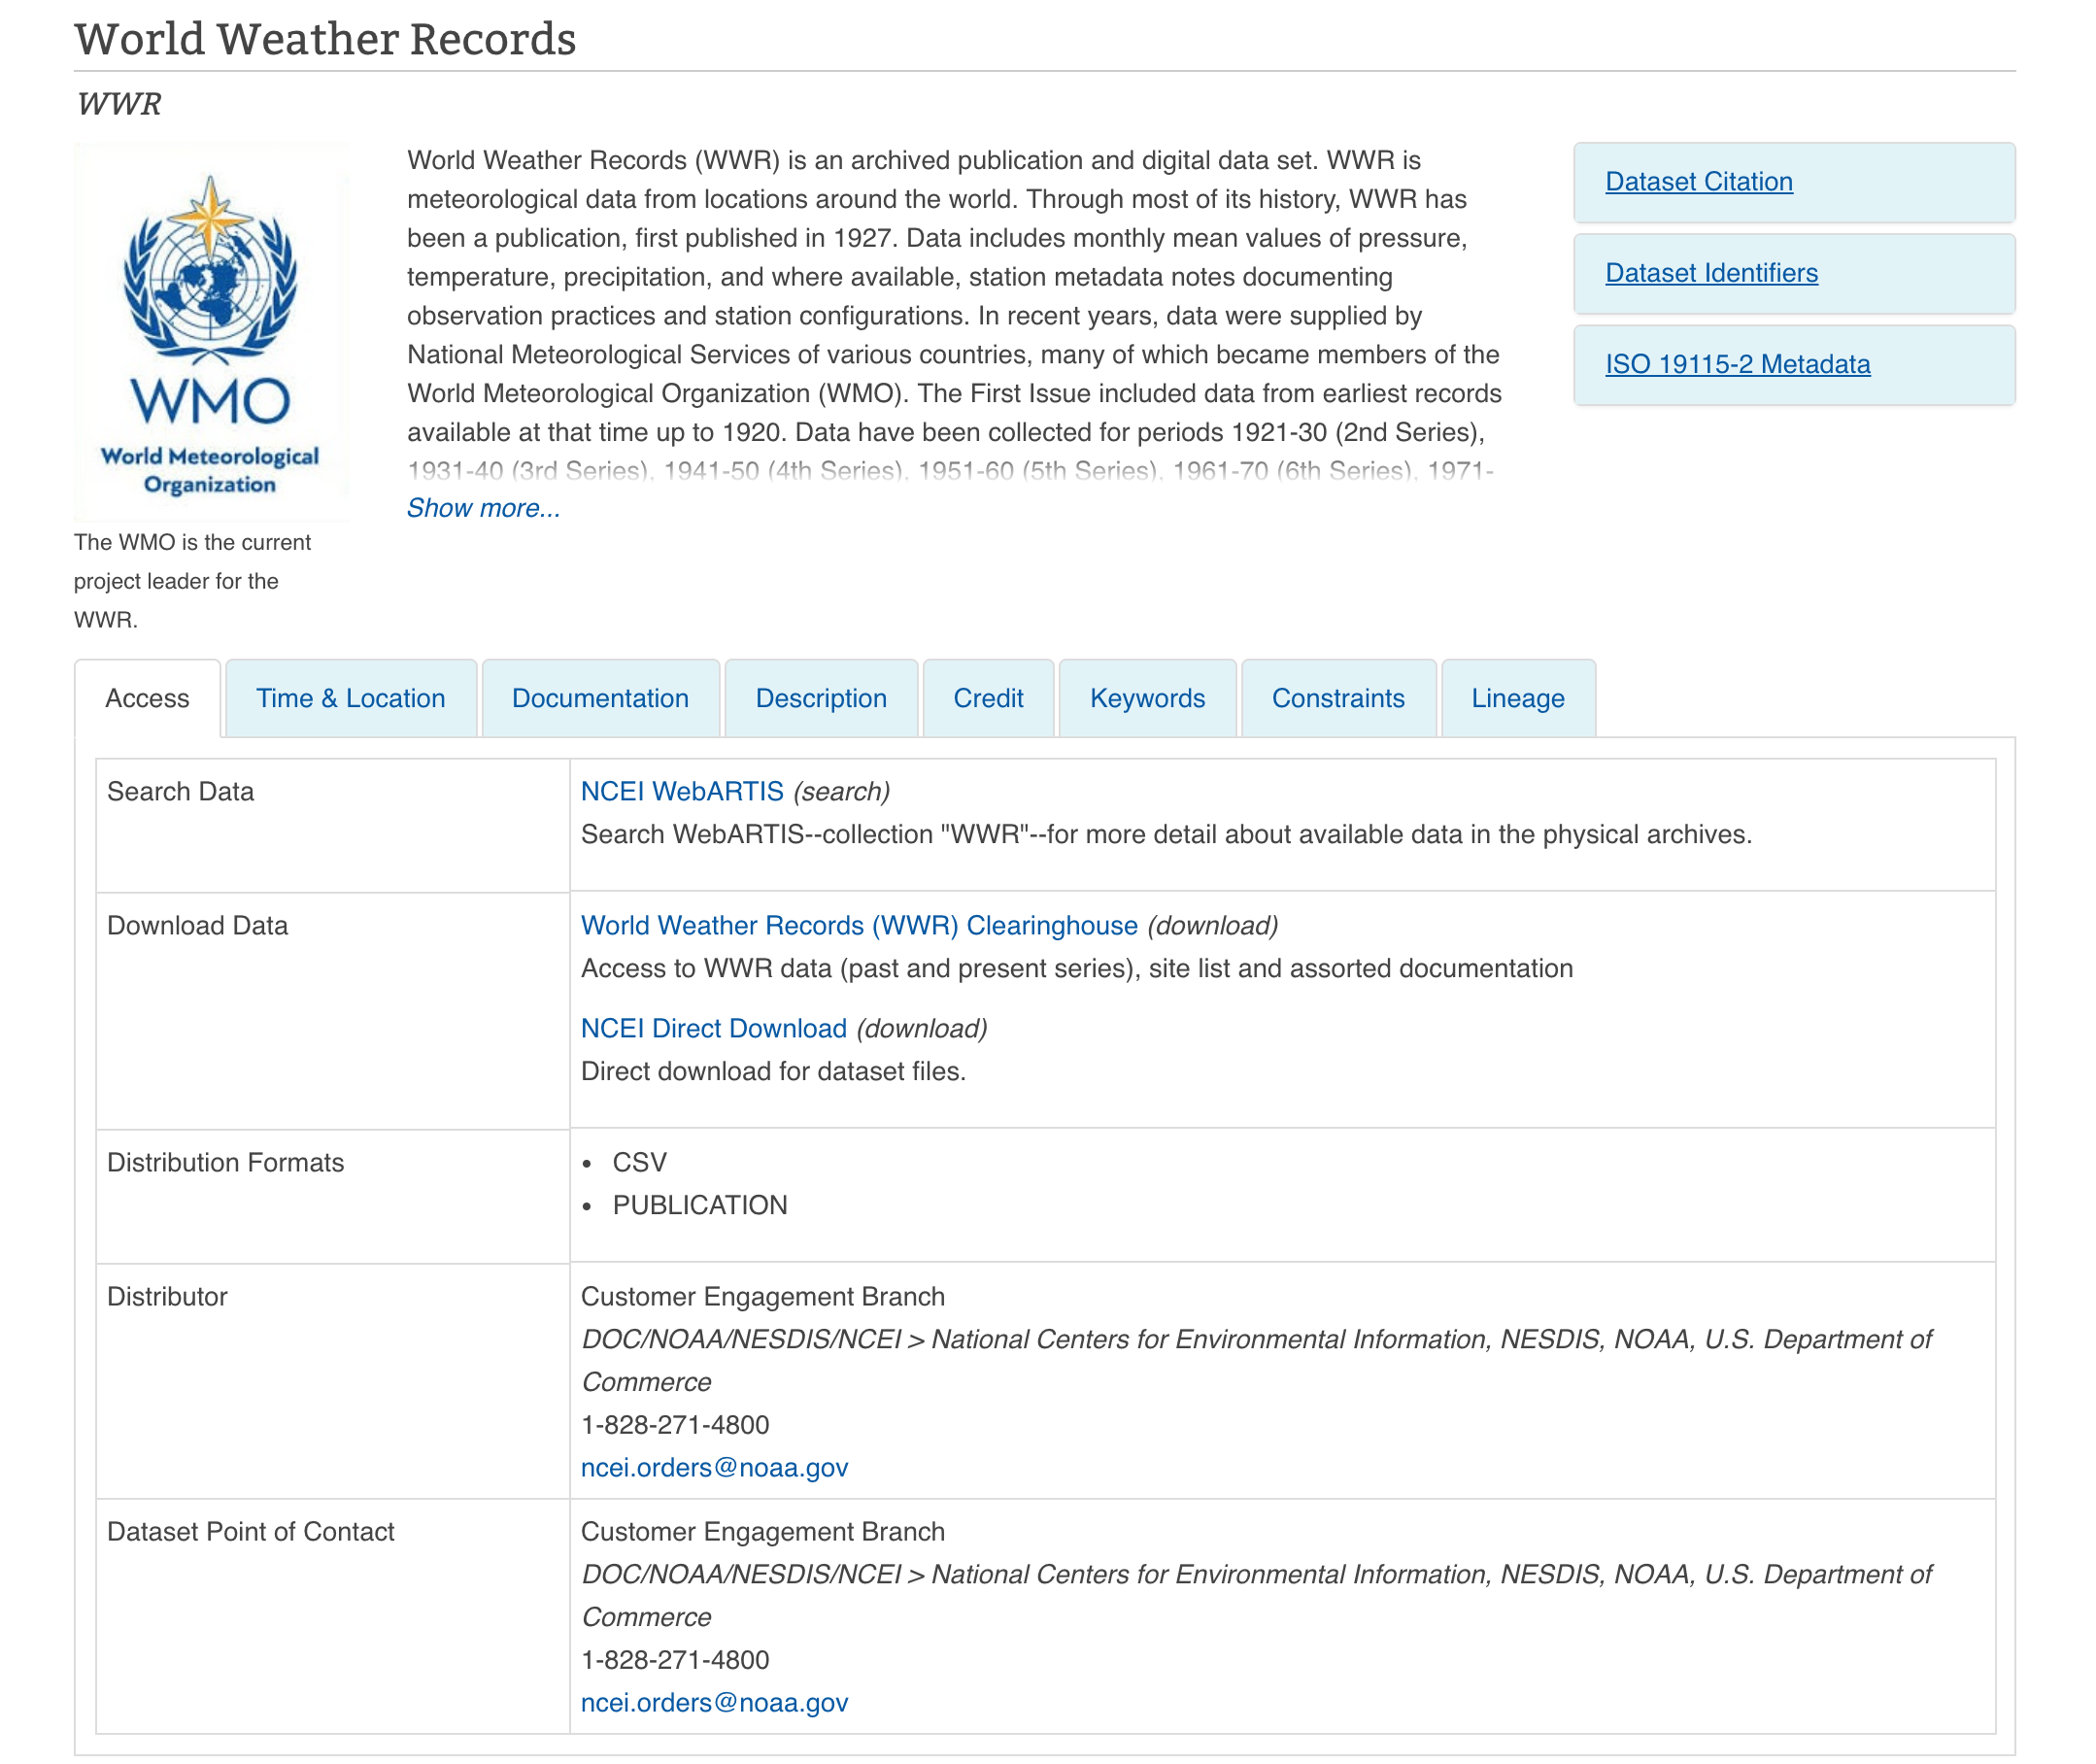 World Weather Records Archive